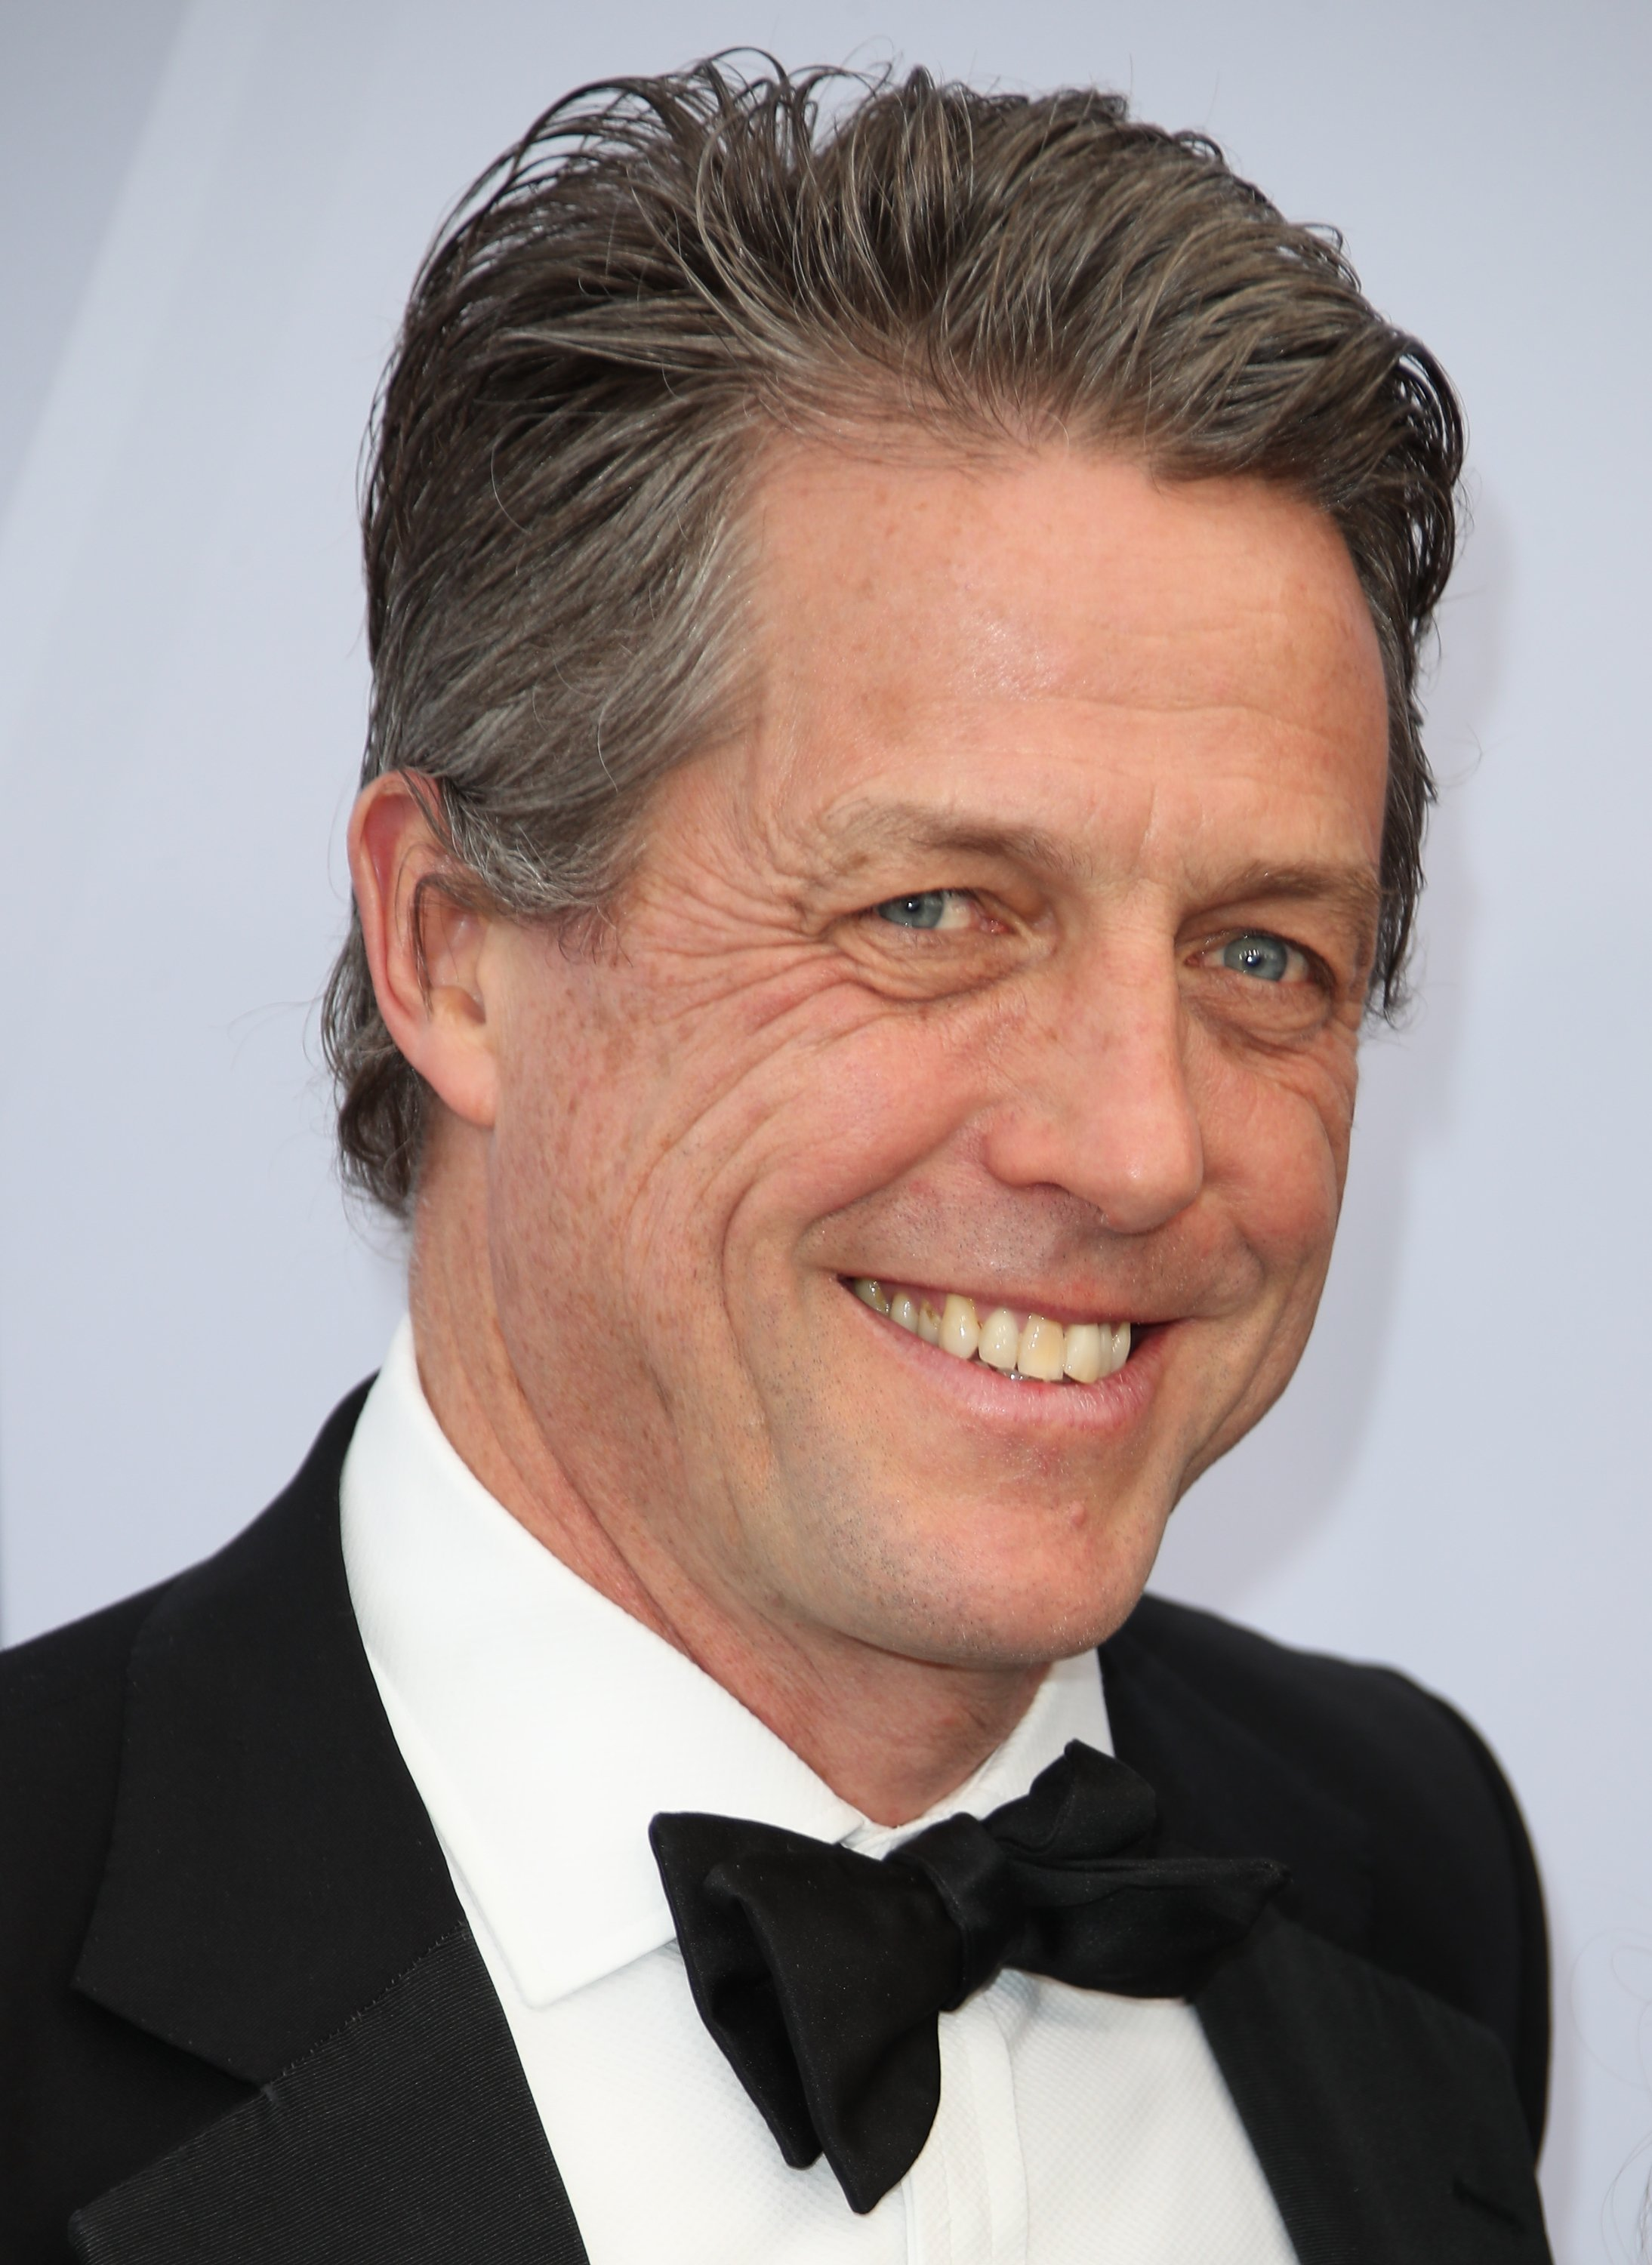 Hugh Grant attending the 25th Annual Screen Actors Guild Awards | Photo: Getty Images